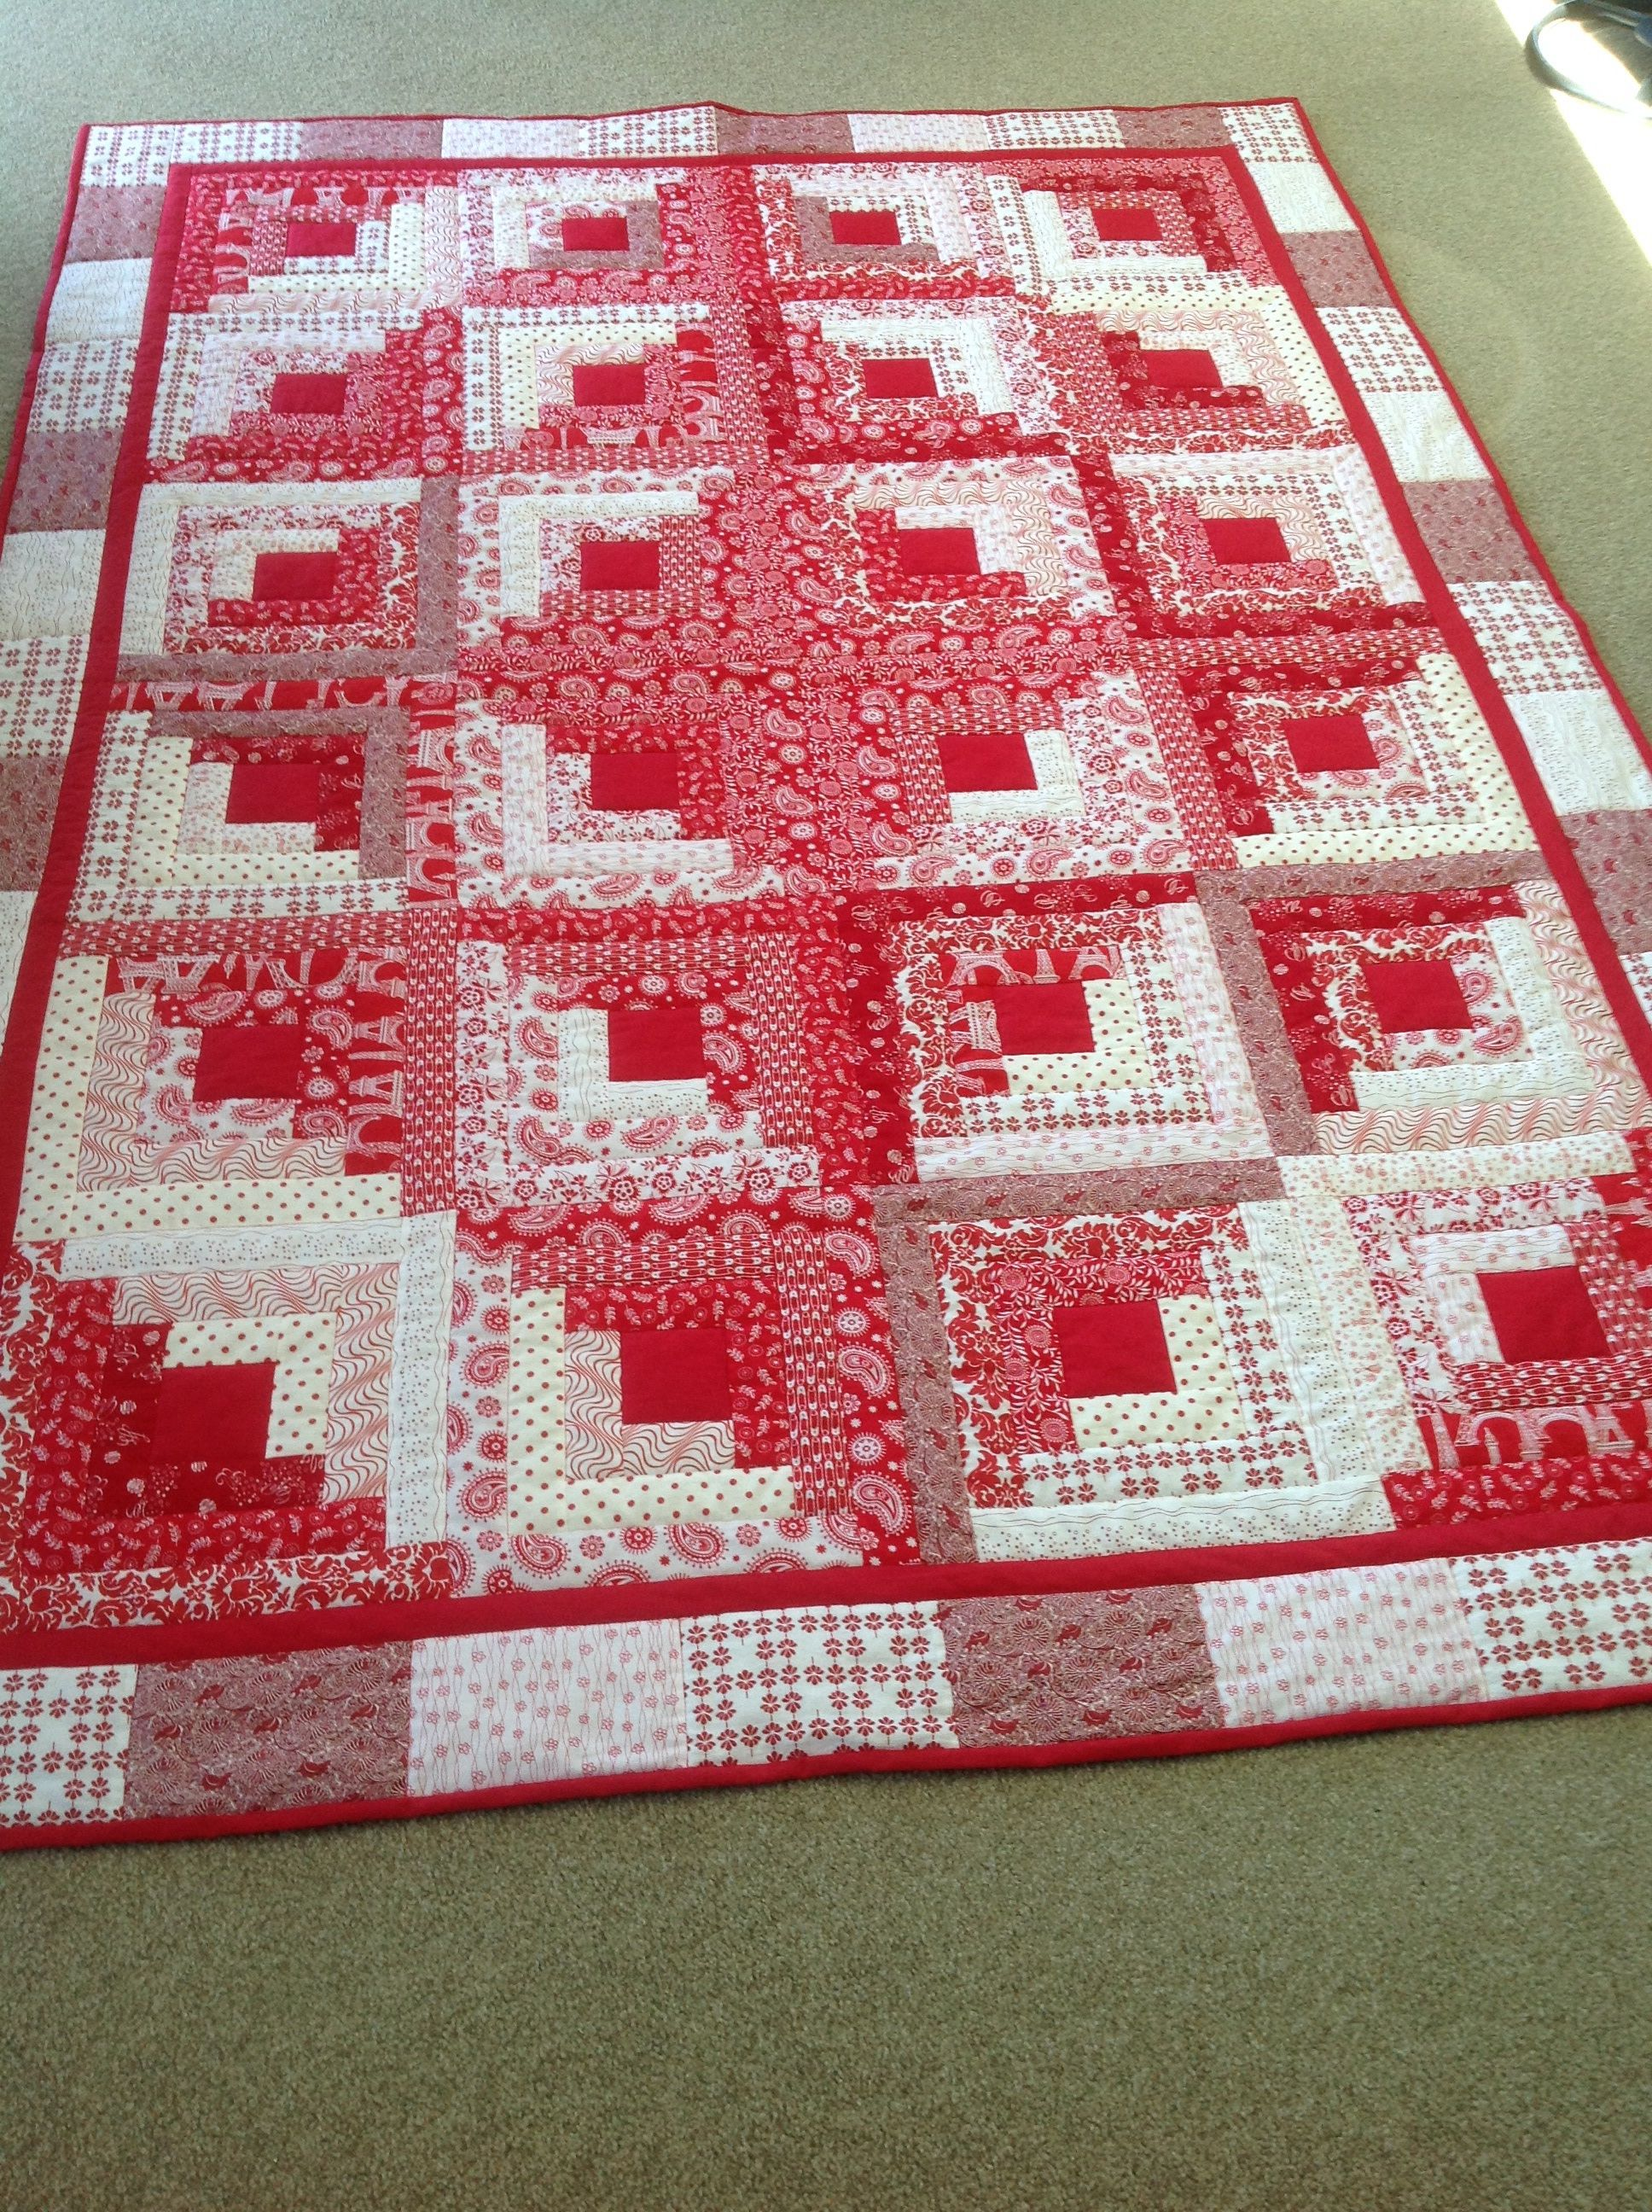 My red and white log cabin log cabin pinte - Patchwork ideen ...